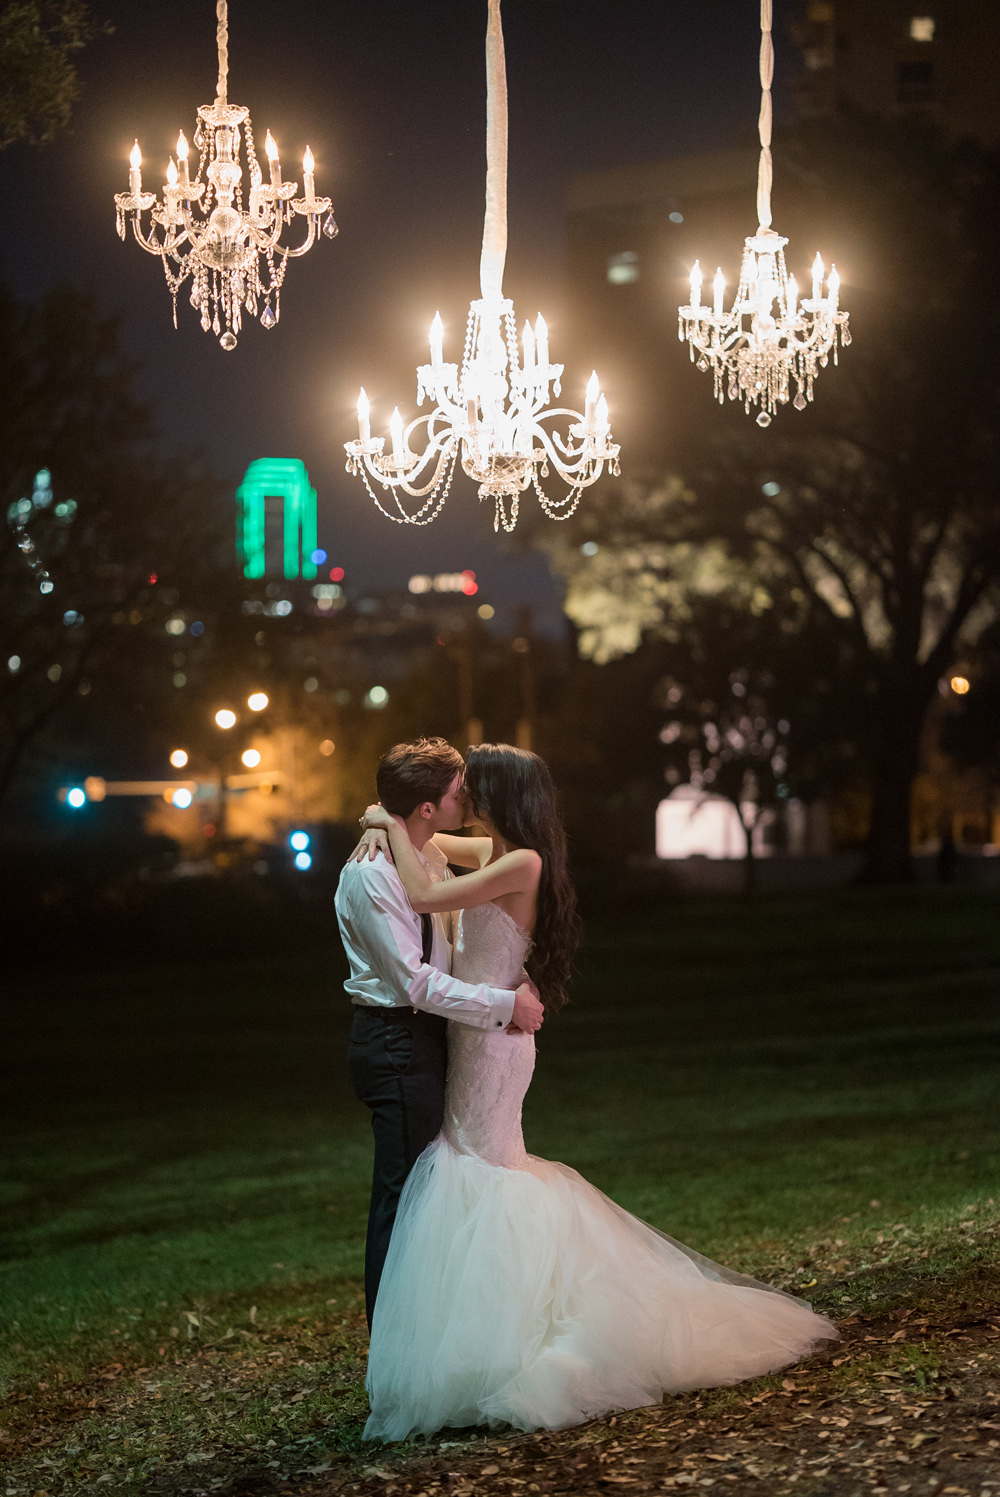 bride and groom kissing under night sky and chandeliers